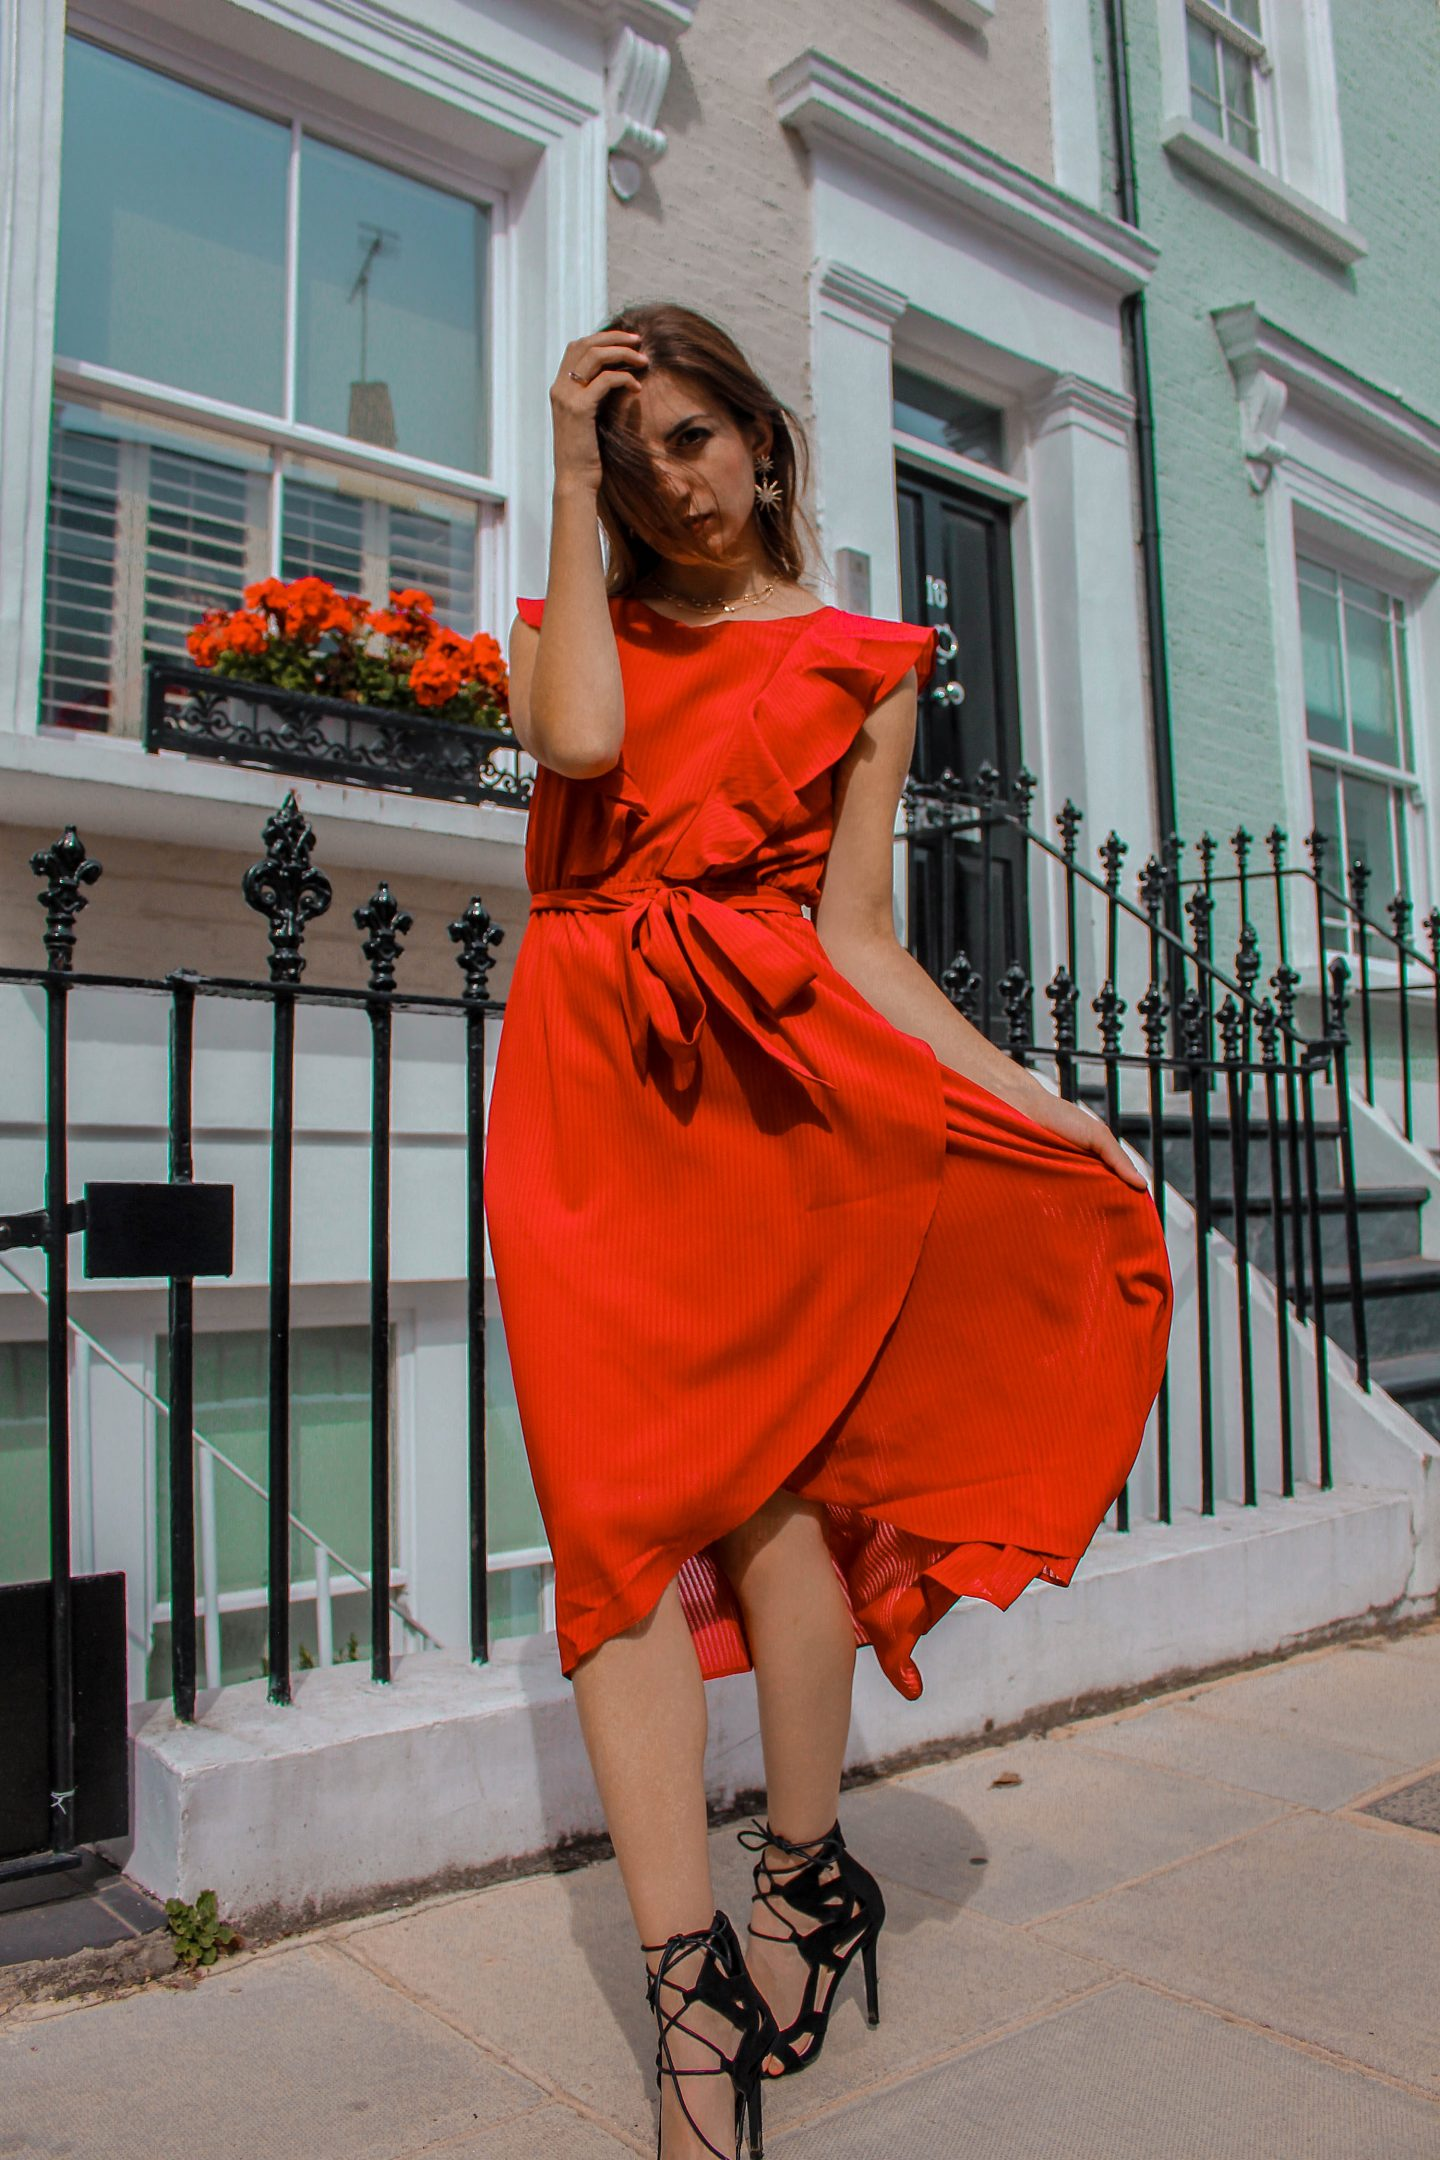 The Red Dress for Autumn